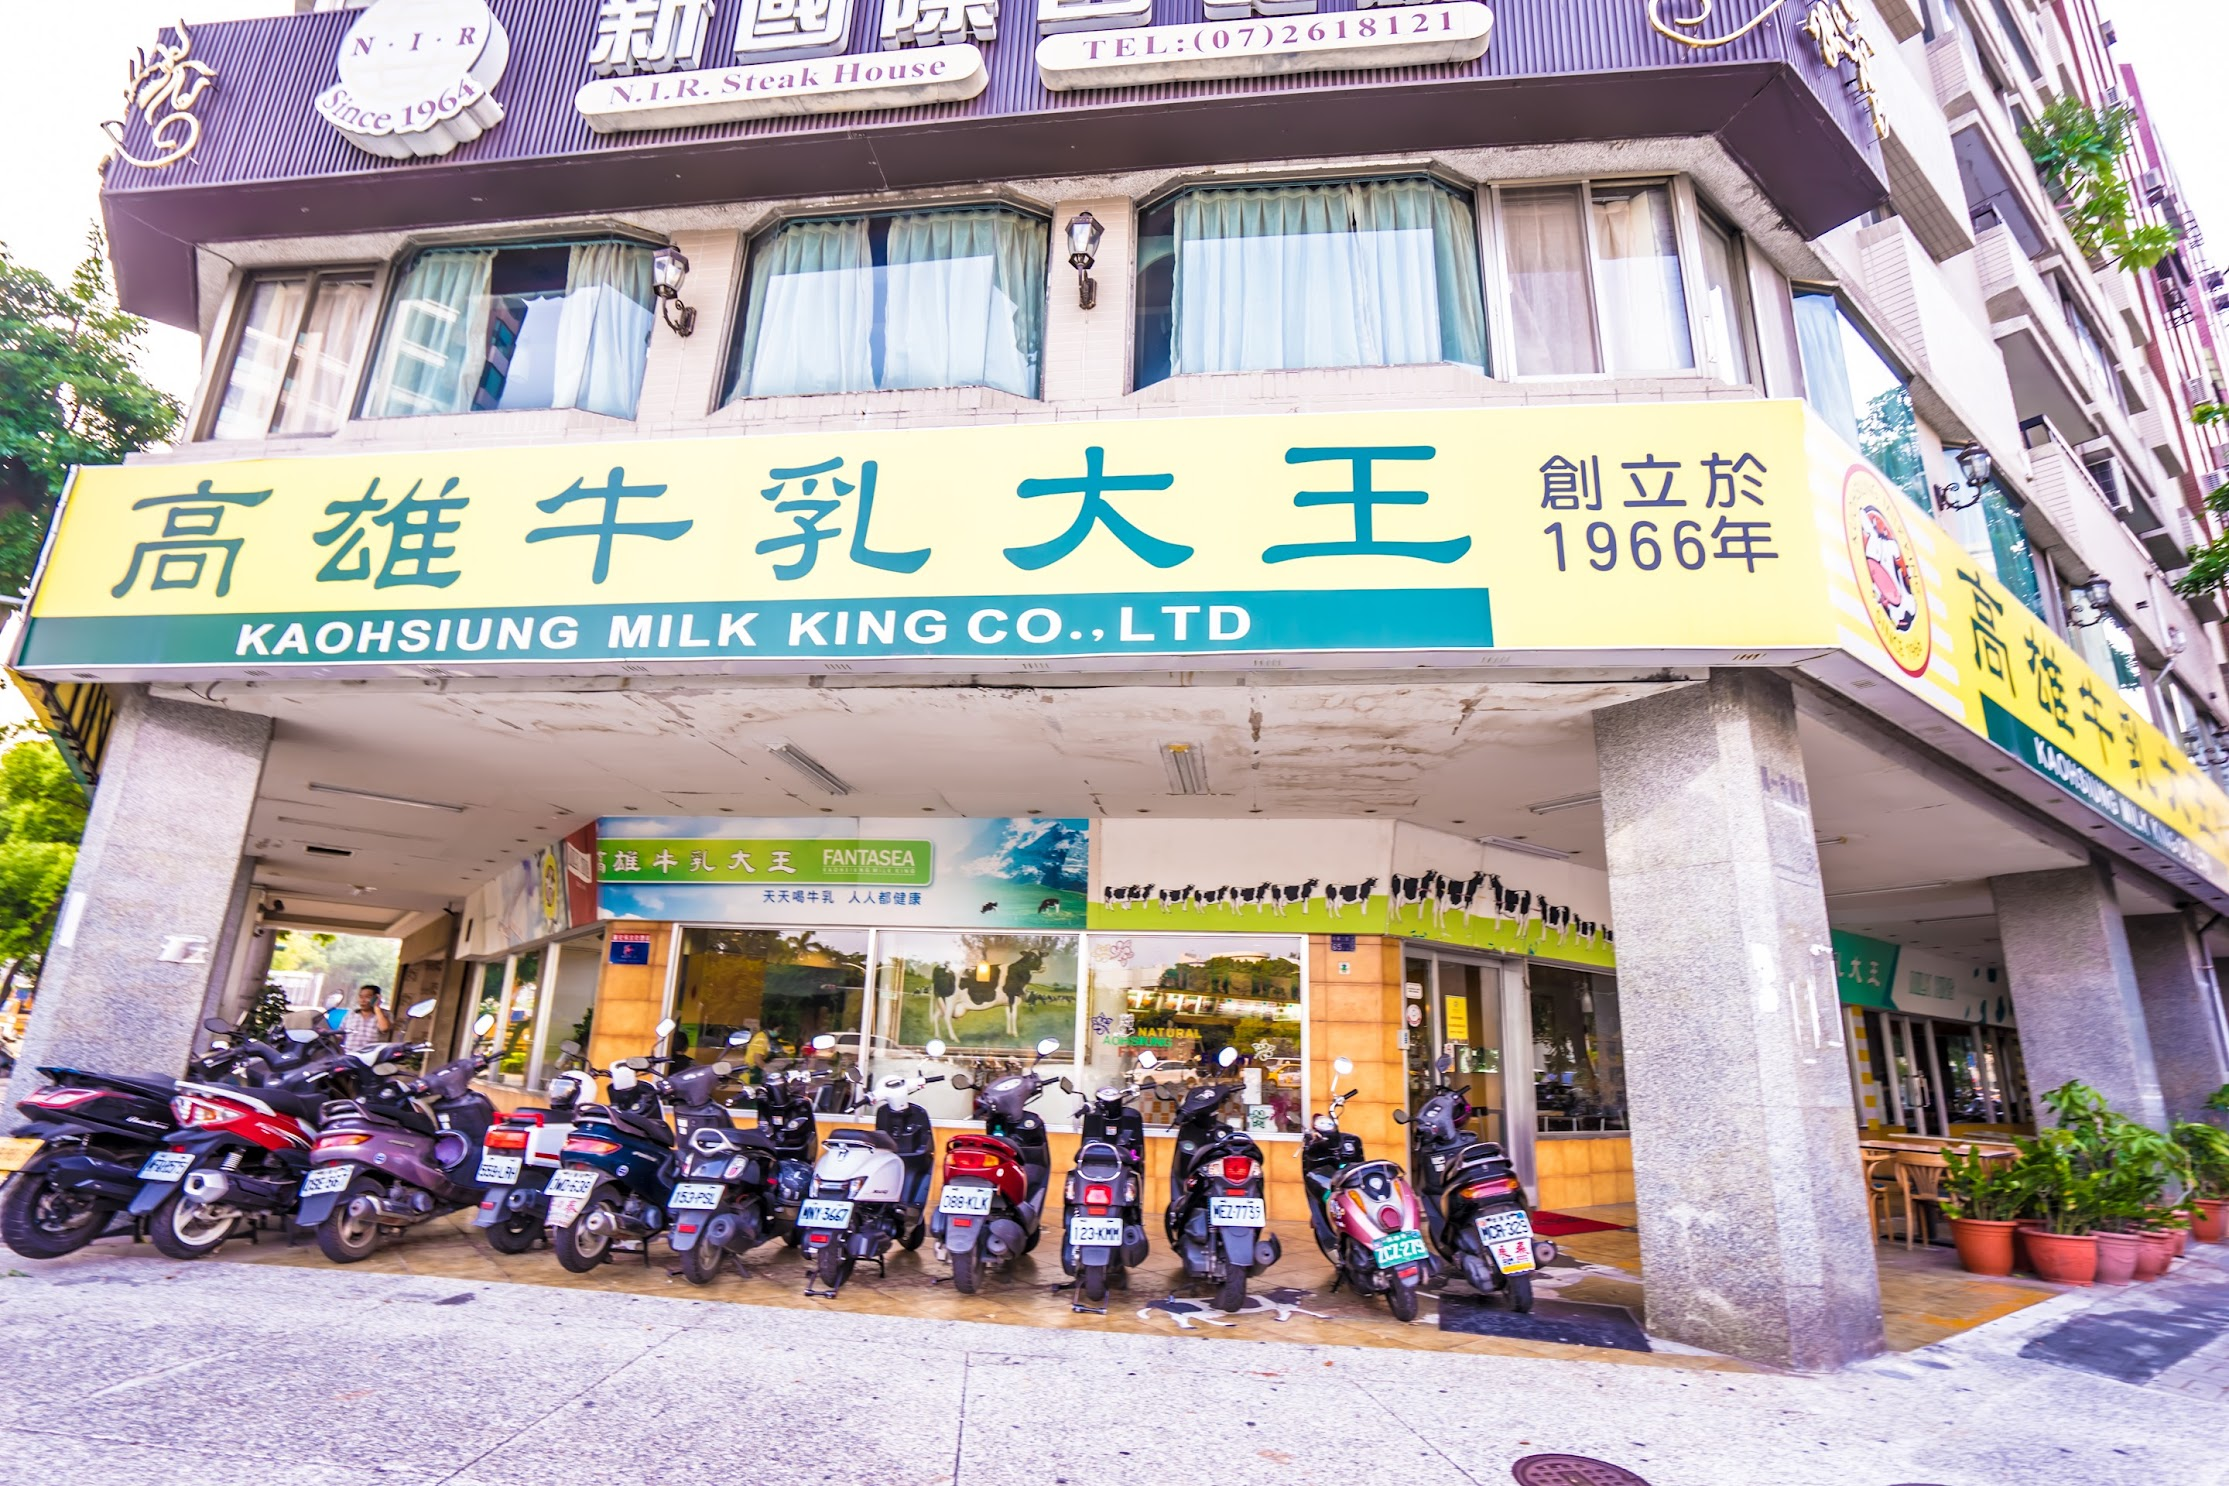 Taiwan Kaohsiung Milk King1